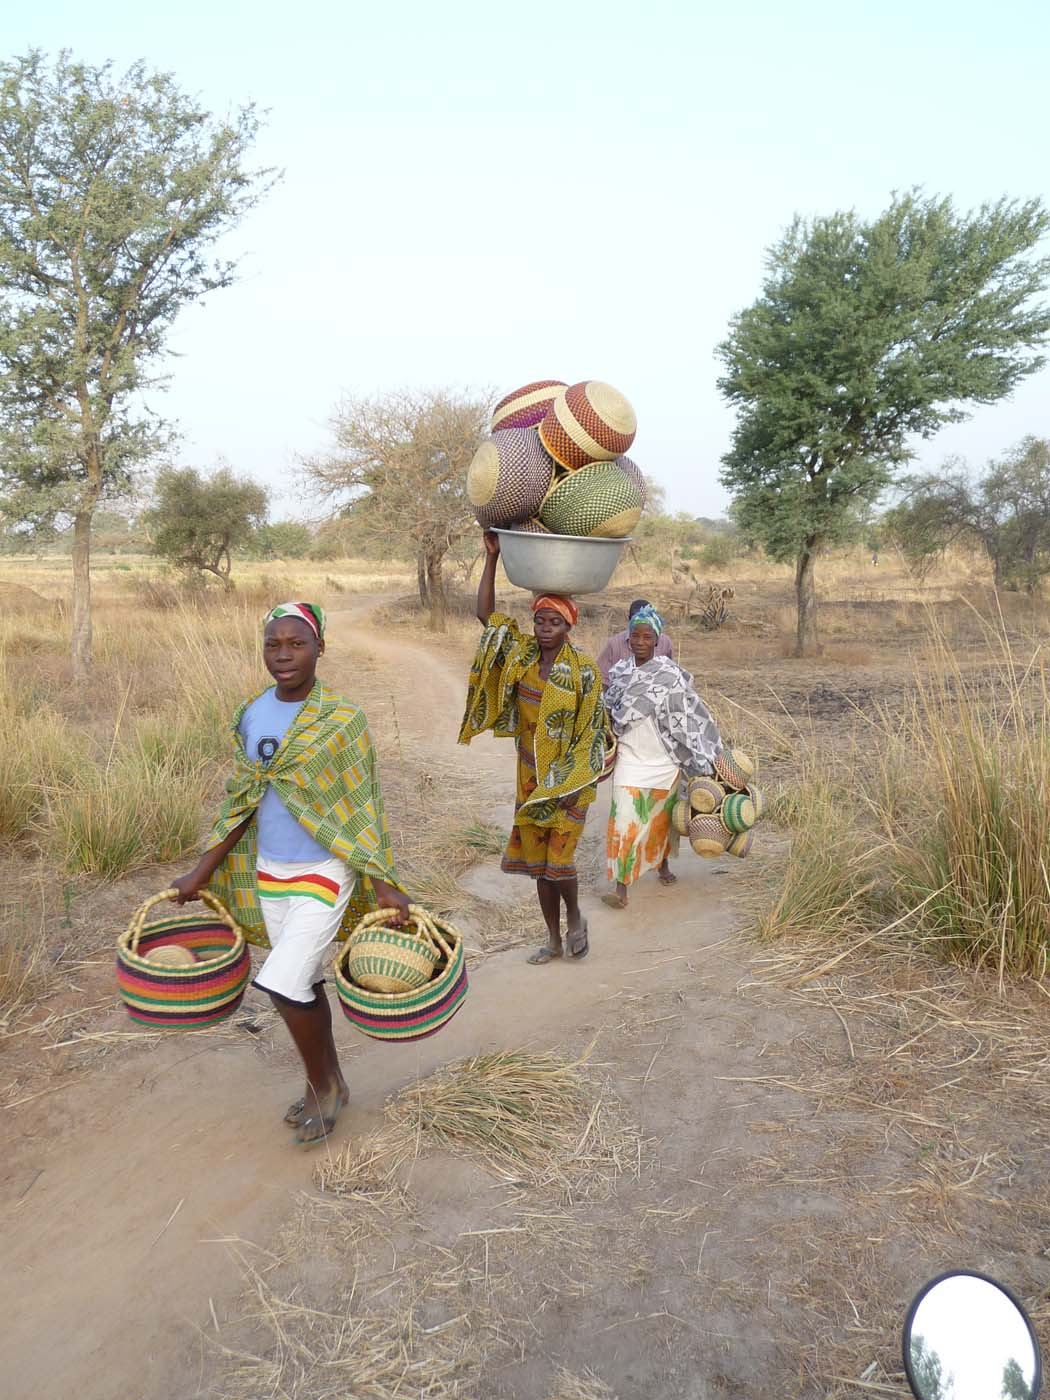 Women often carry baskets for other women in the village